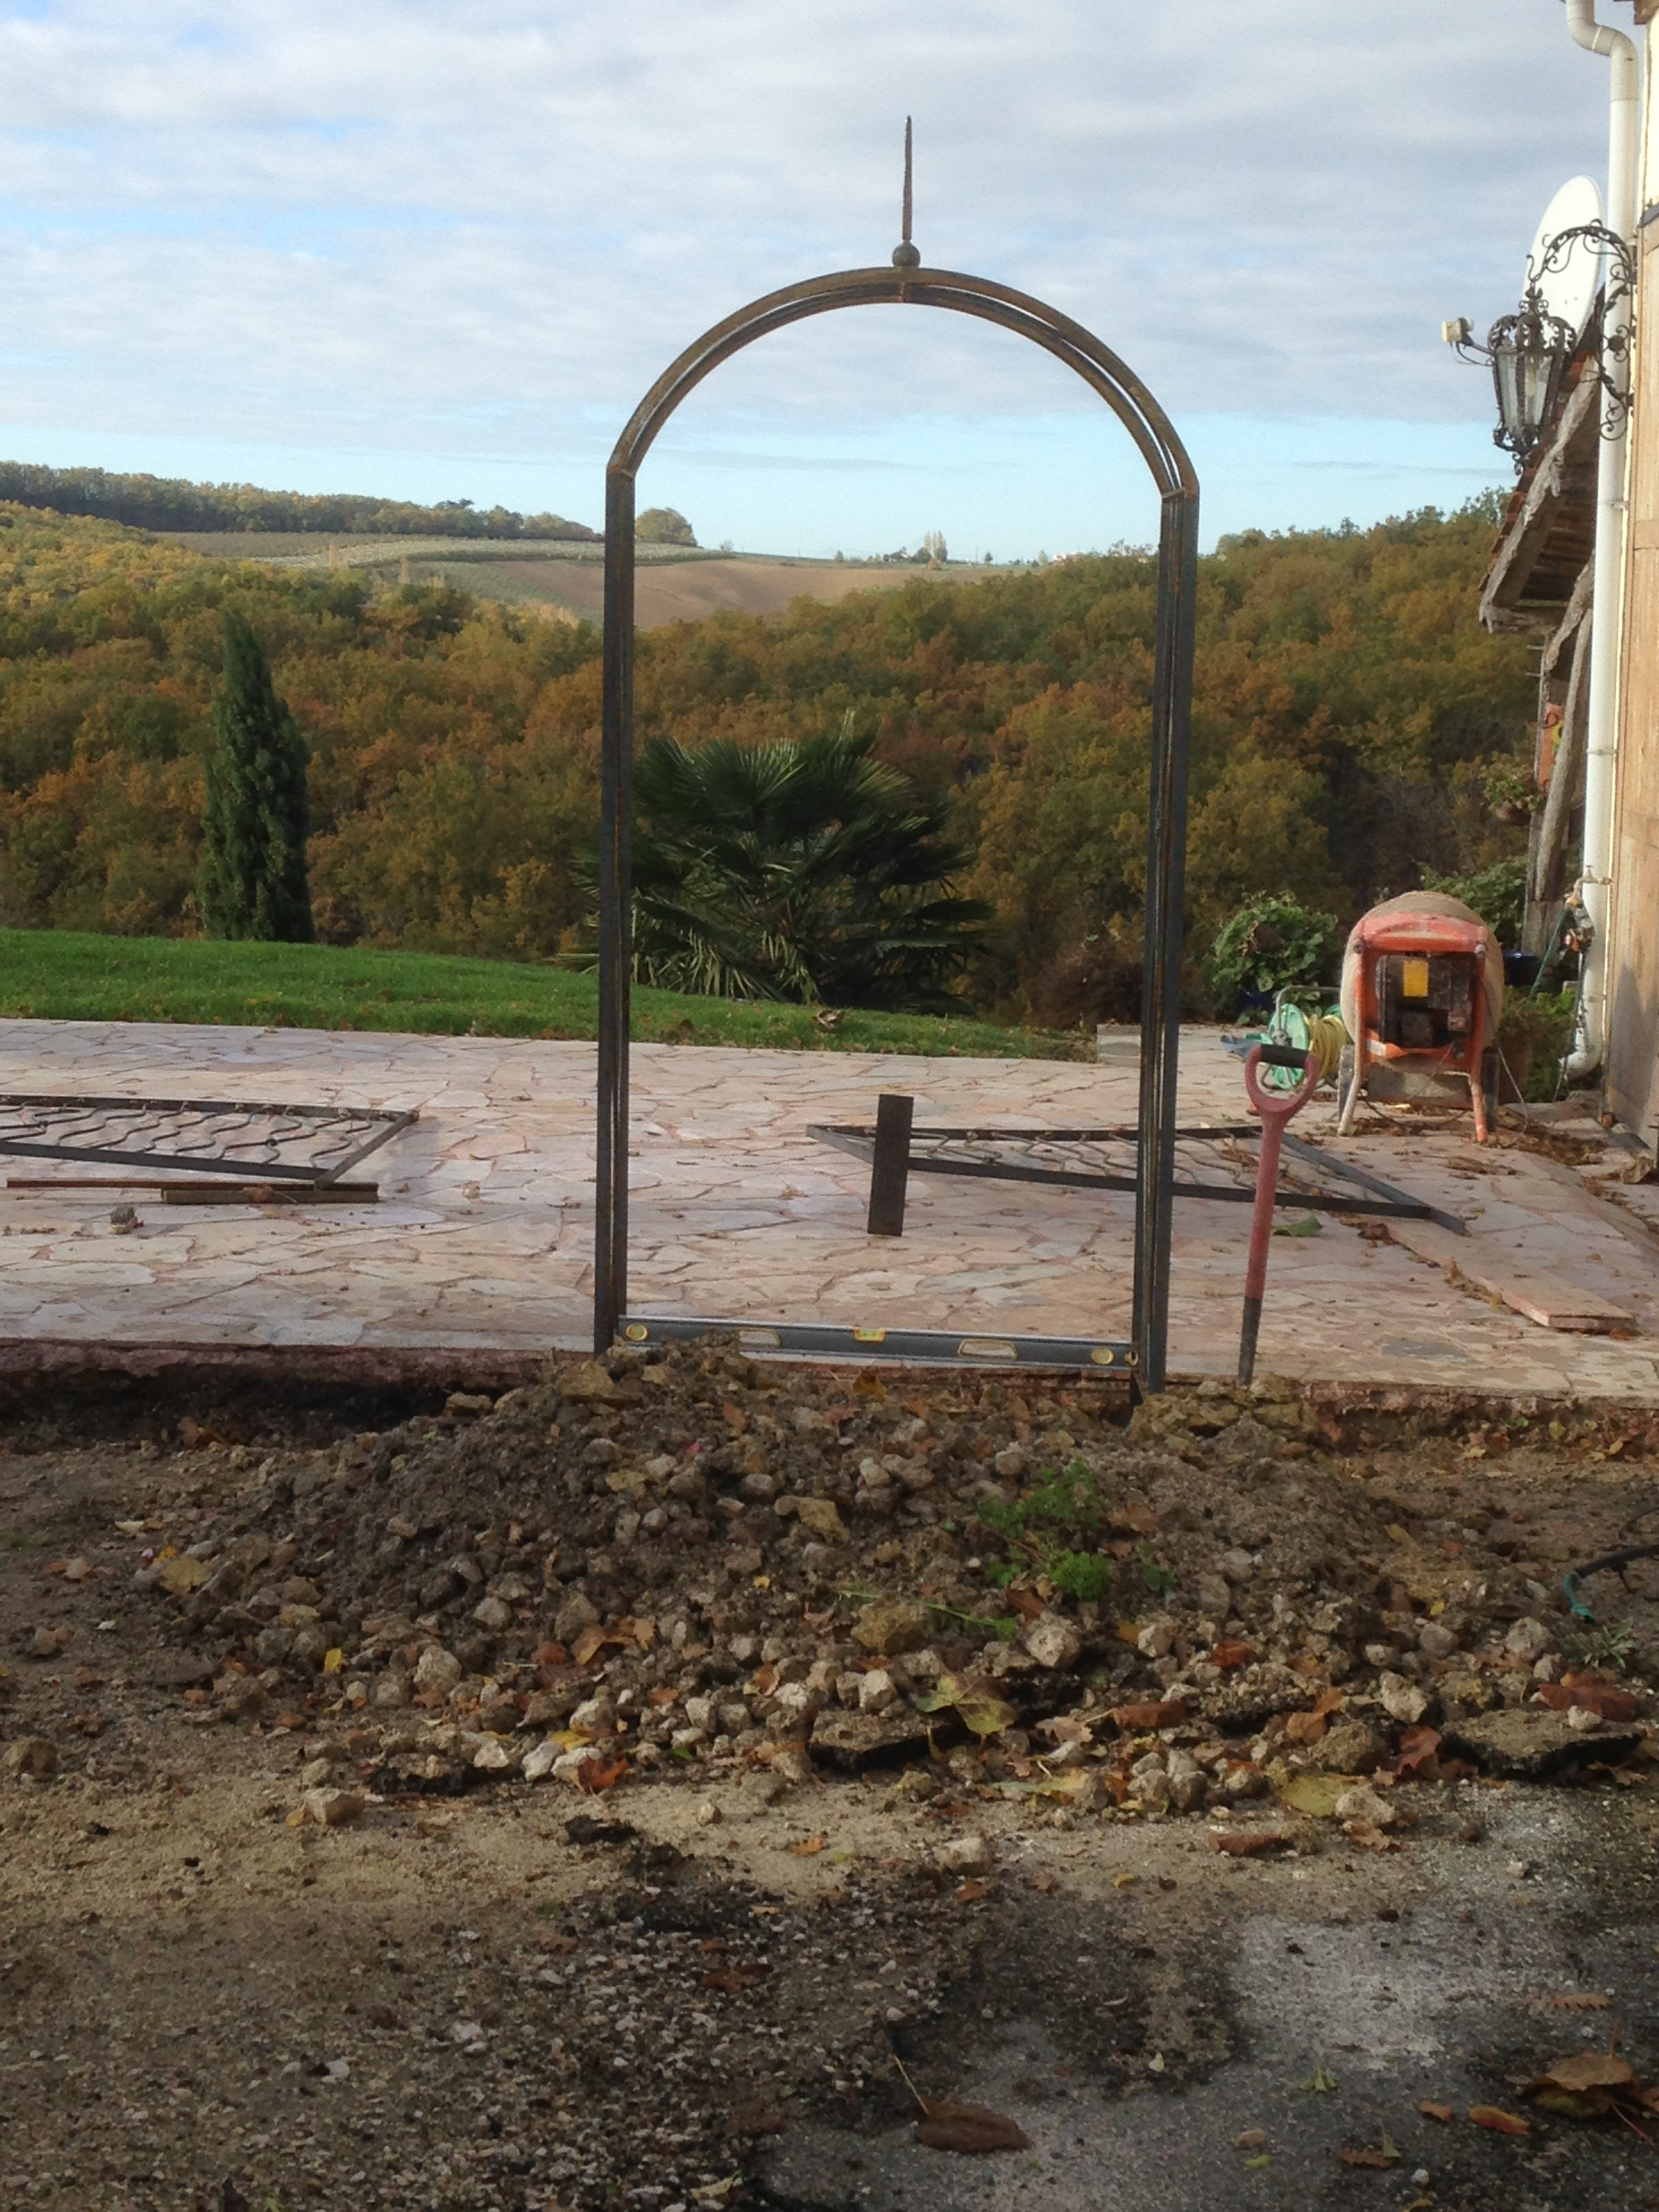 The arch is set in place first. It frames a lovely view over the rolling hills beyond. Note the necessary 'tools of the trade' on this worksite!